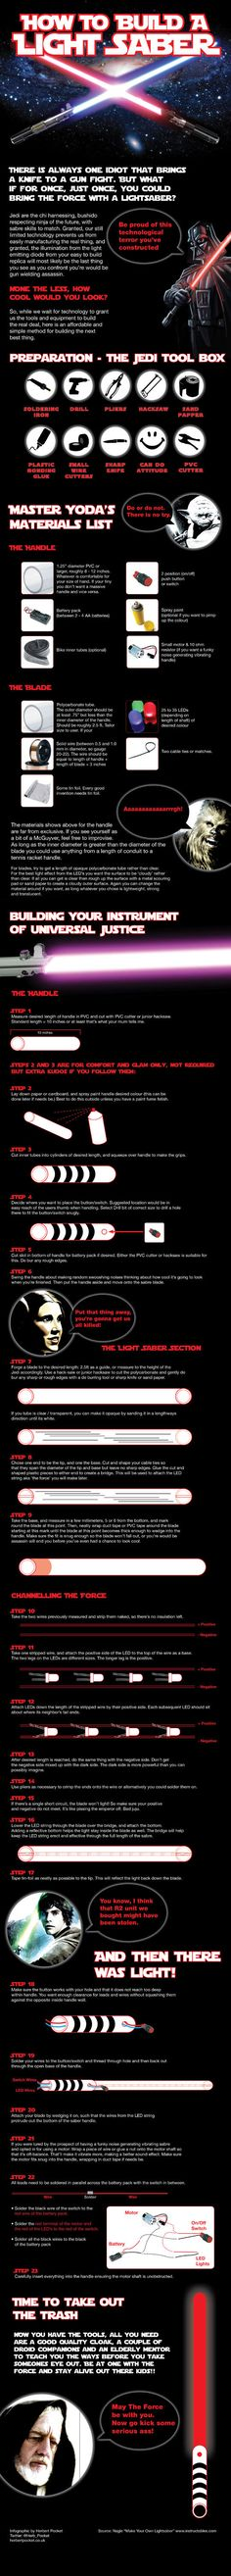 Infographic: How To Make your Own Lightsaber